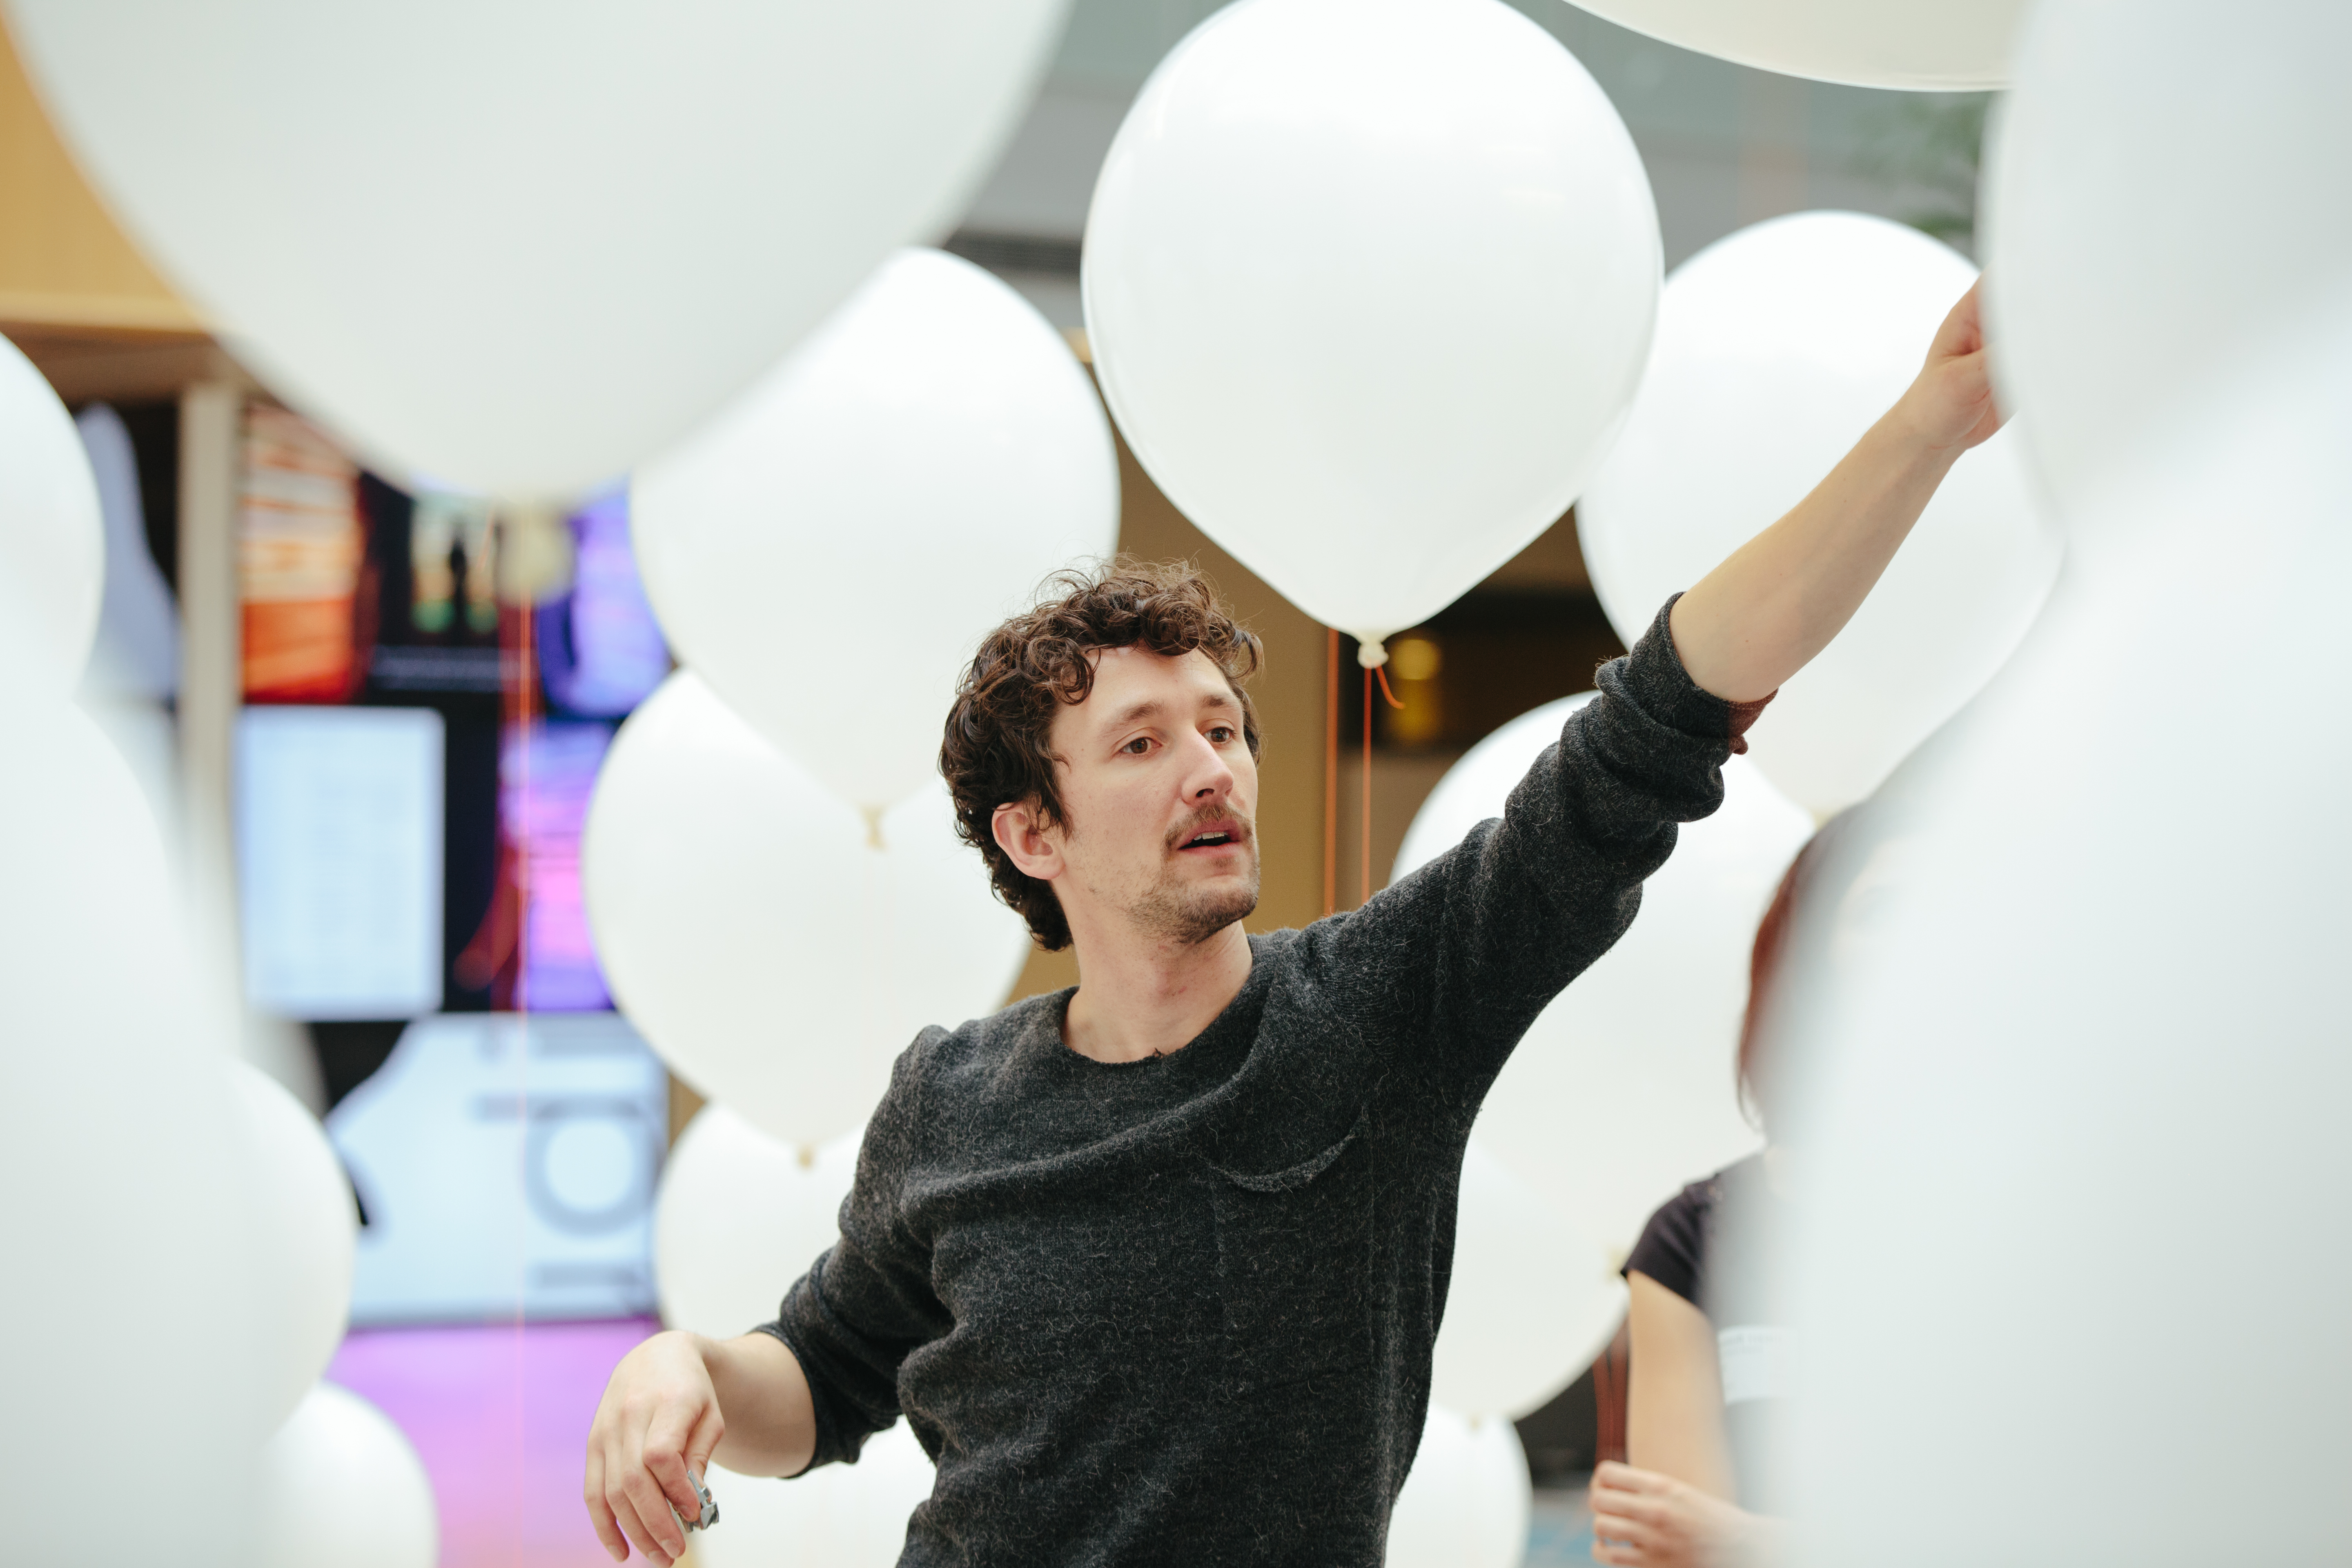 Artist with balloons